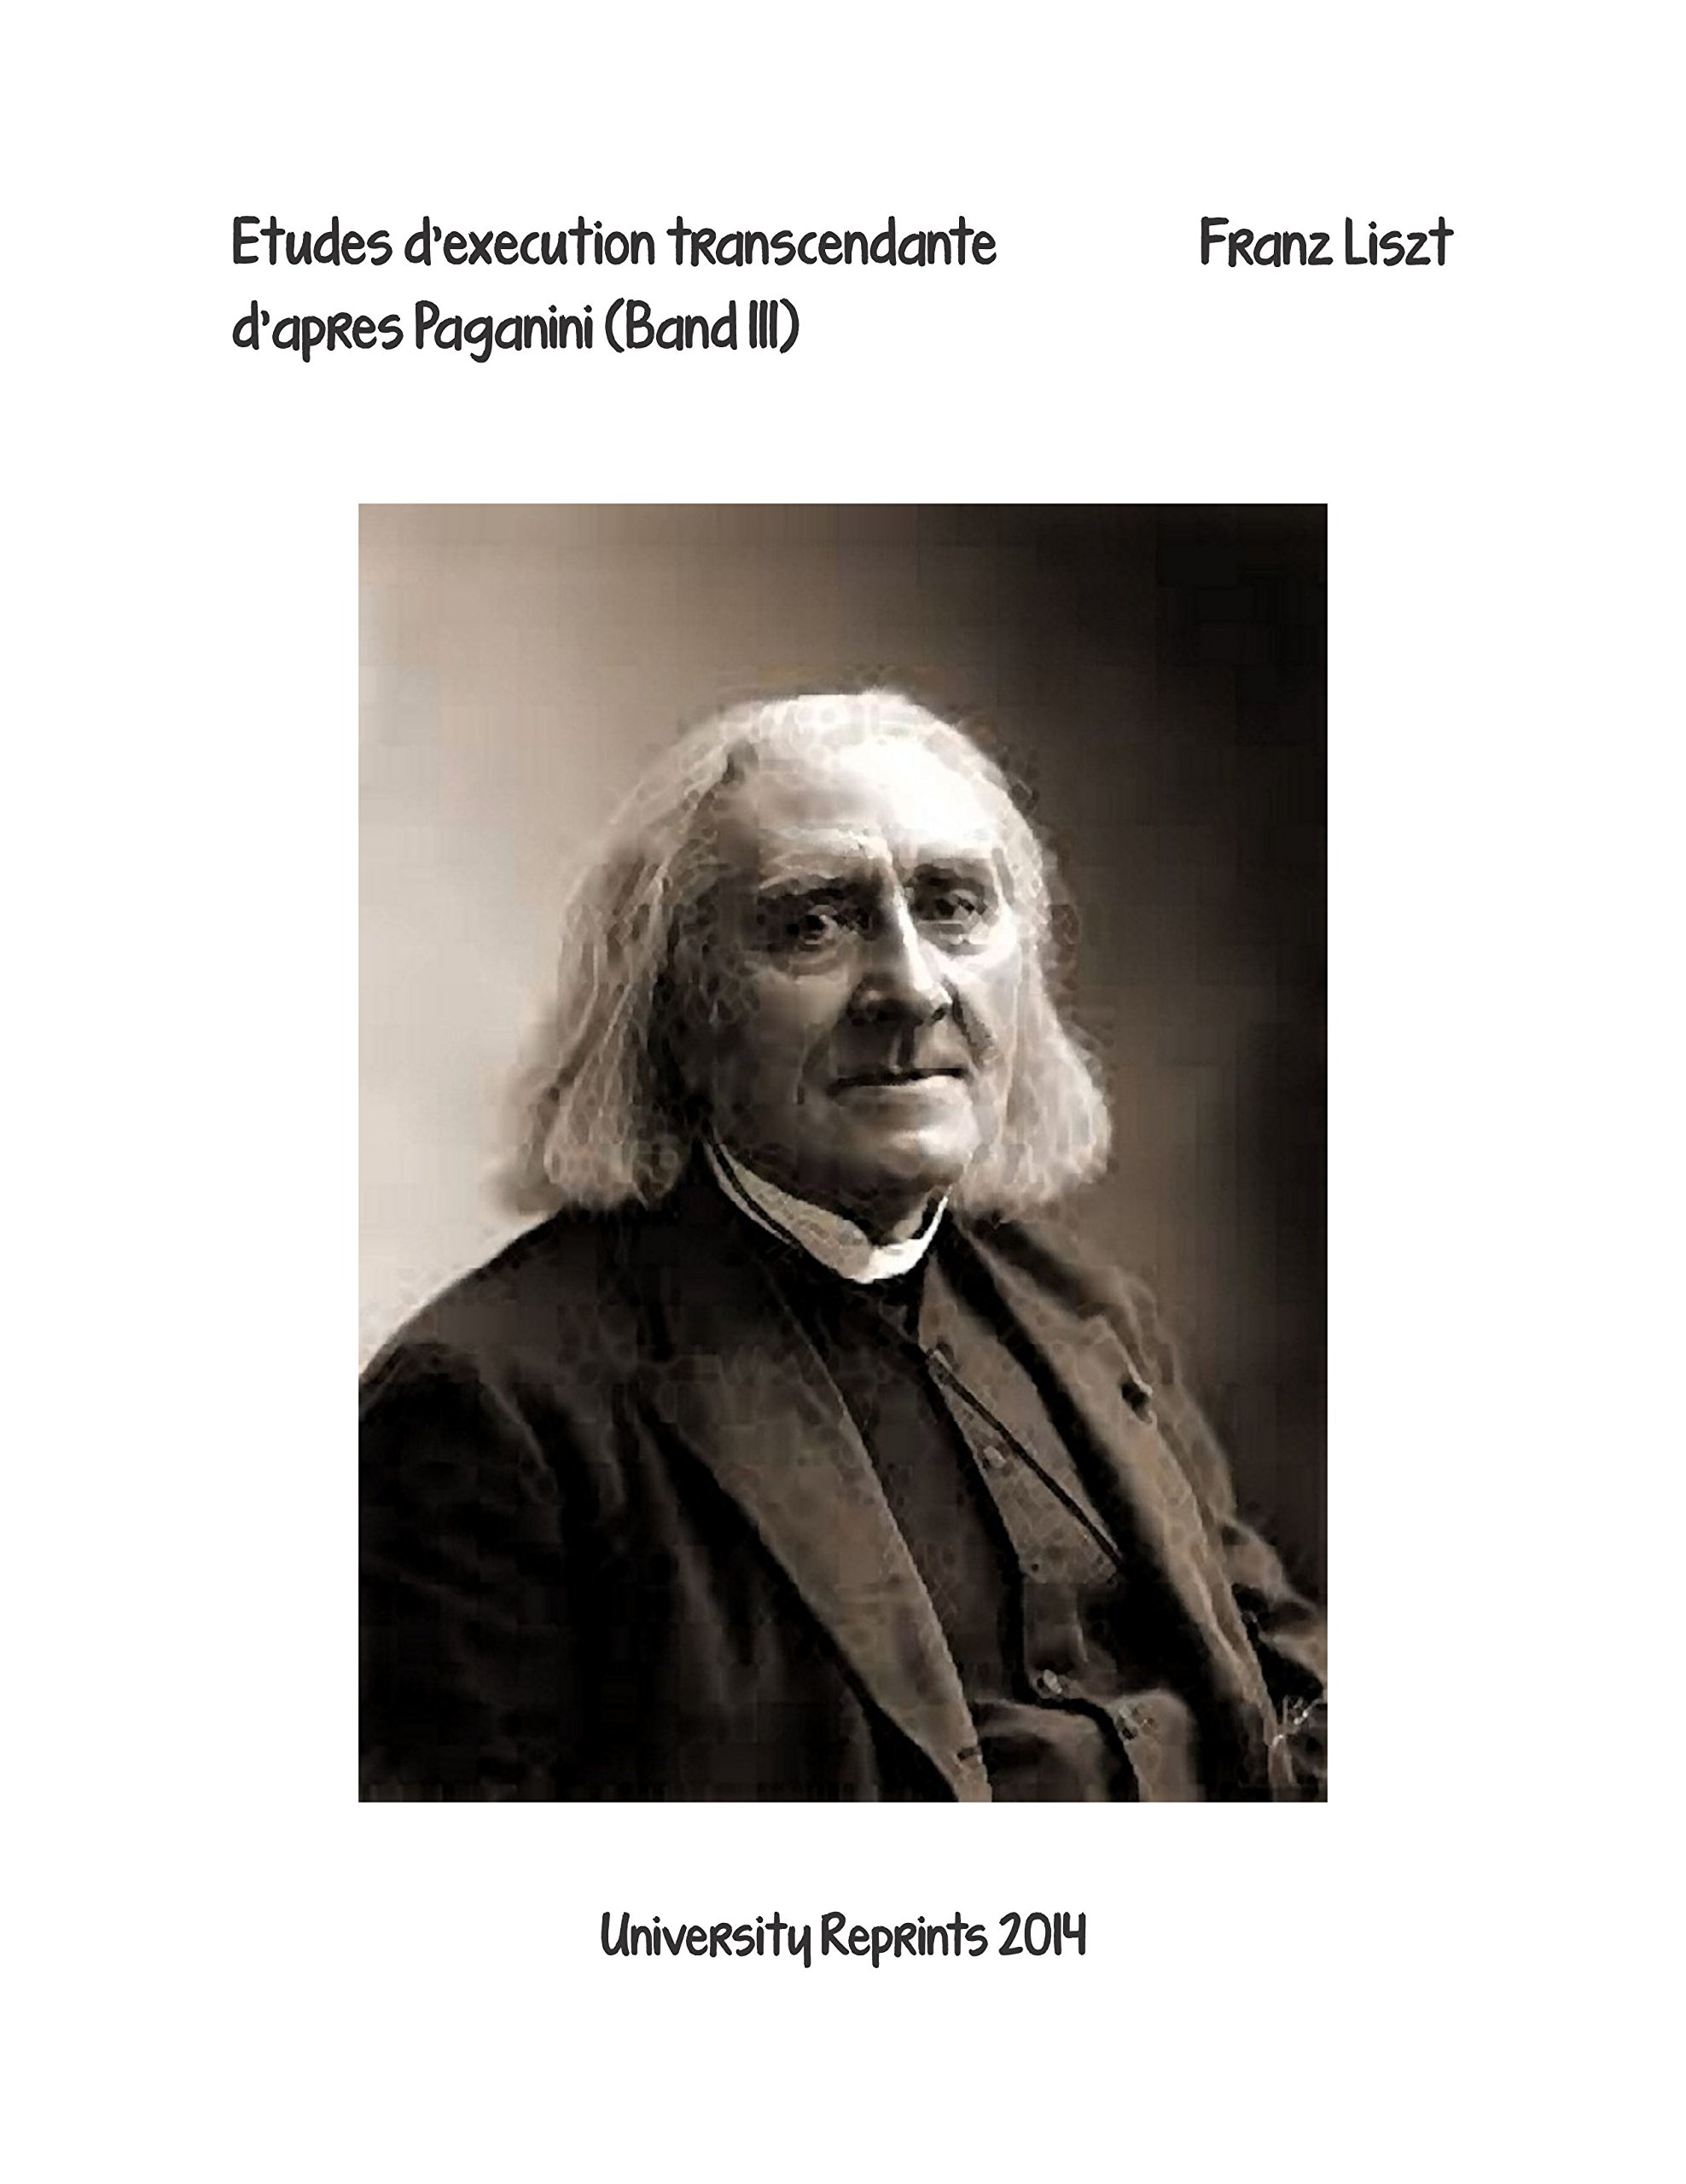 Read Online Etudes d'execution transcendante d'apres Paganini, Band III (Franz Liszt) Complete Score. [Student Loose Leaf Facsimile Edition. Re-Imaged from Original for Greater Clarity. 2014] pdf